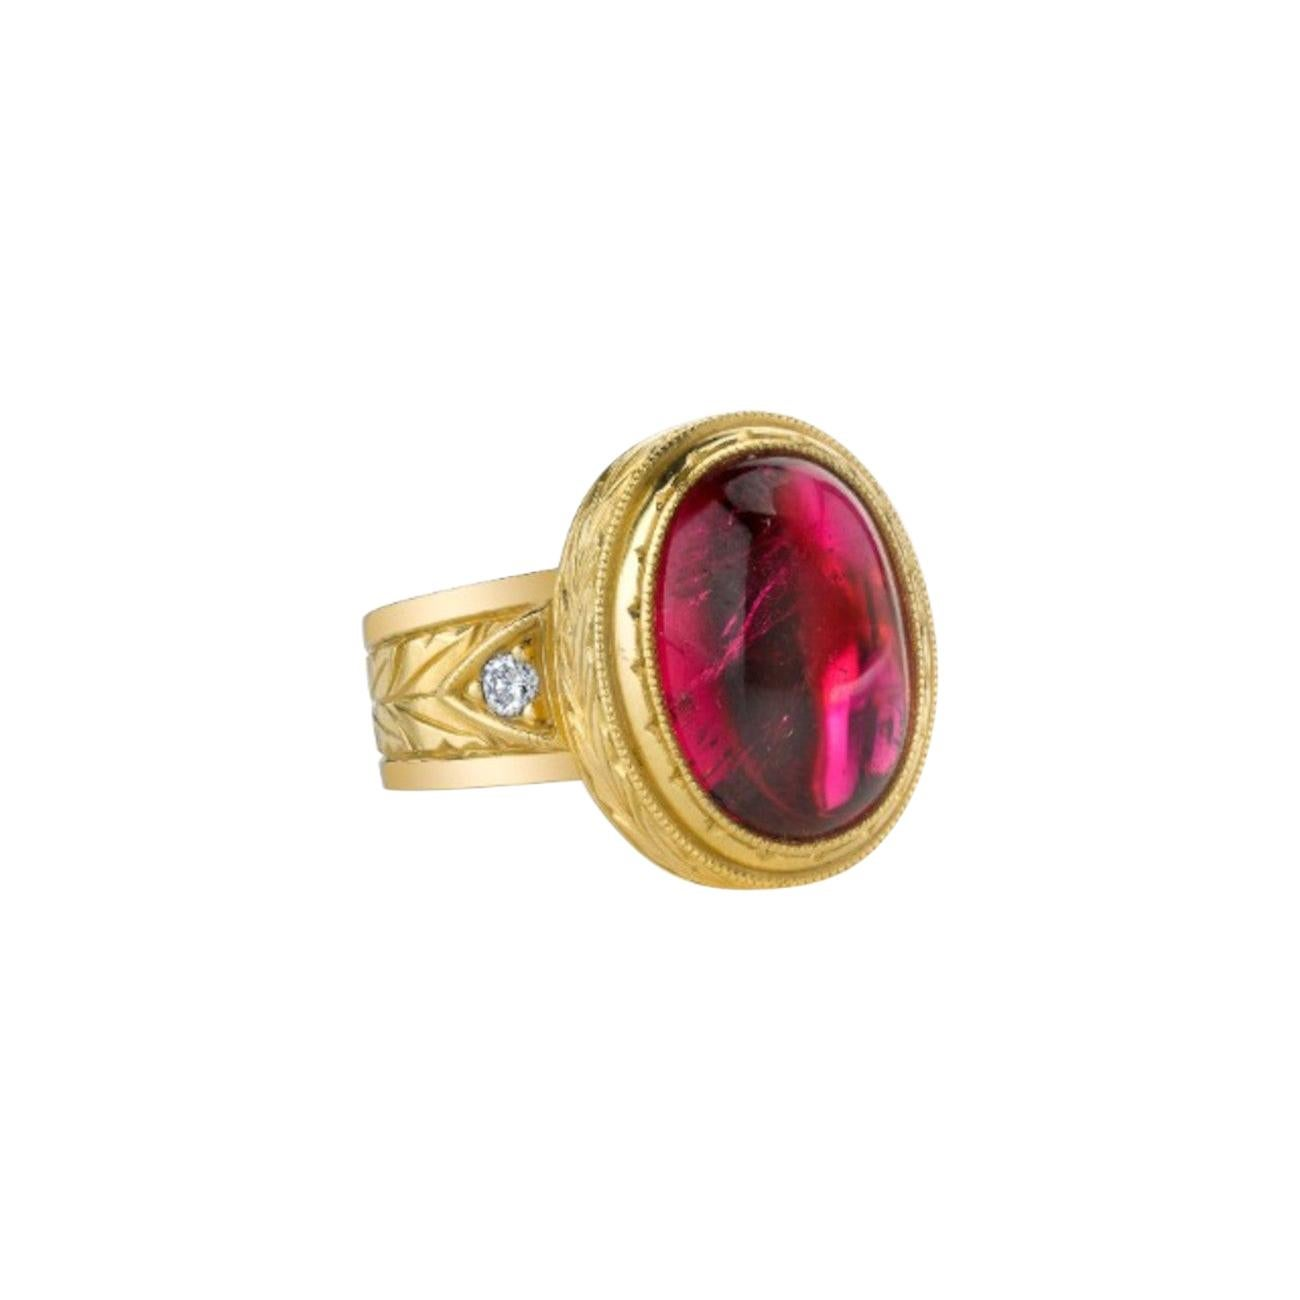 7.47 Carat Rubellite Tourmaline Cabochon Diamond Yellow Gold Dome Band Ring